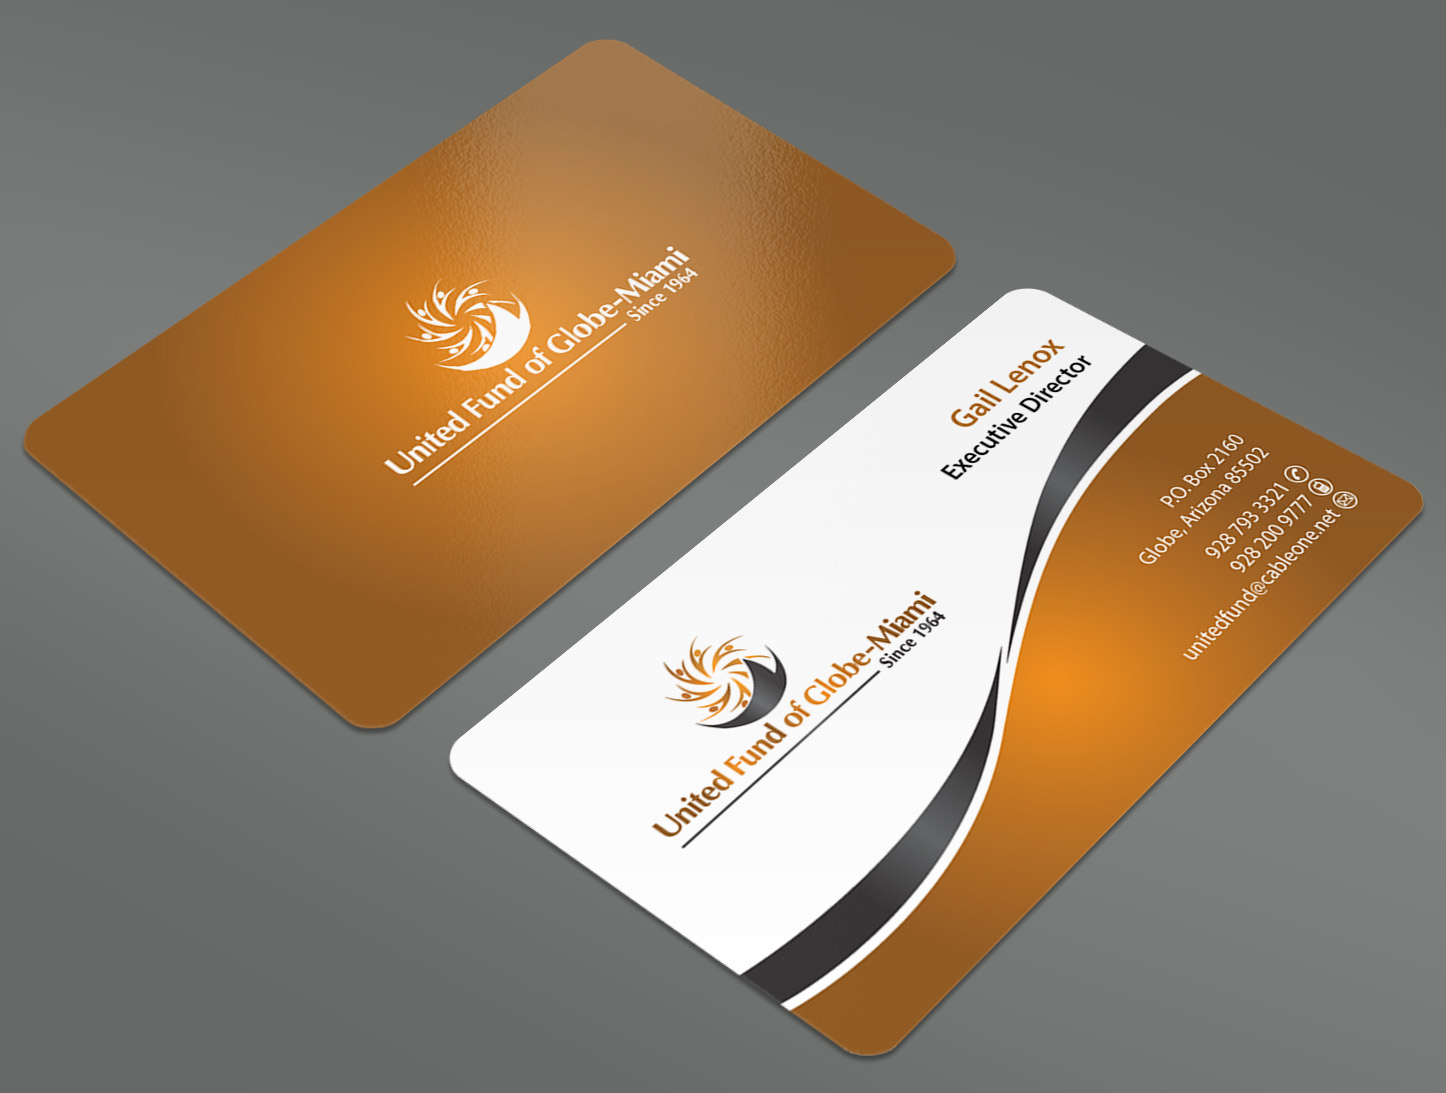 United Fund business cards and stationery - Miscellaneous